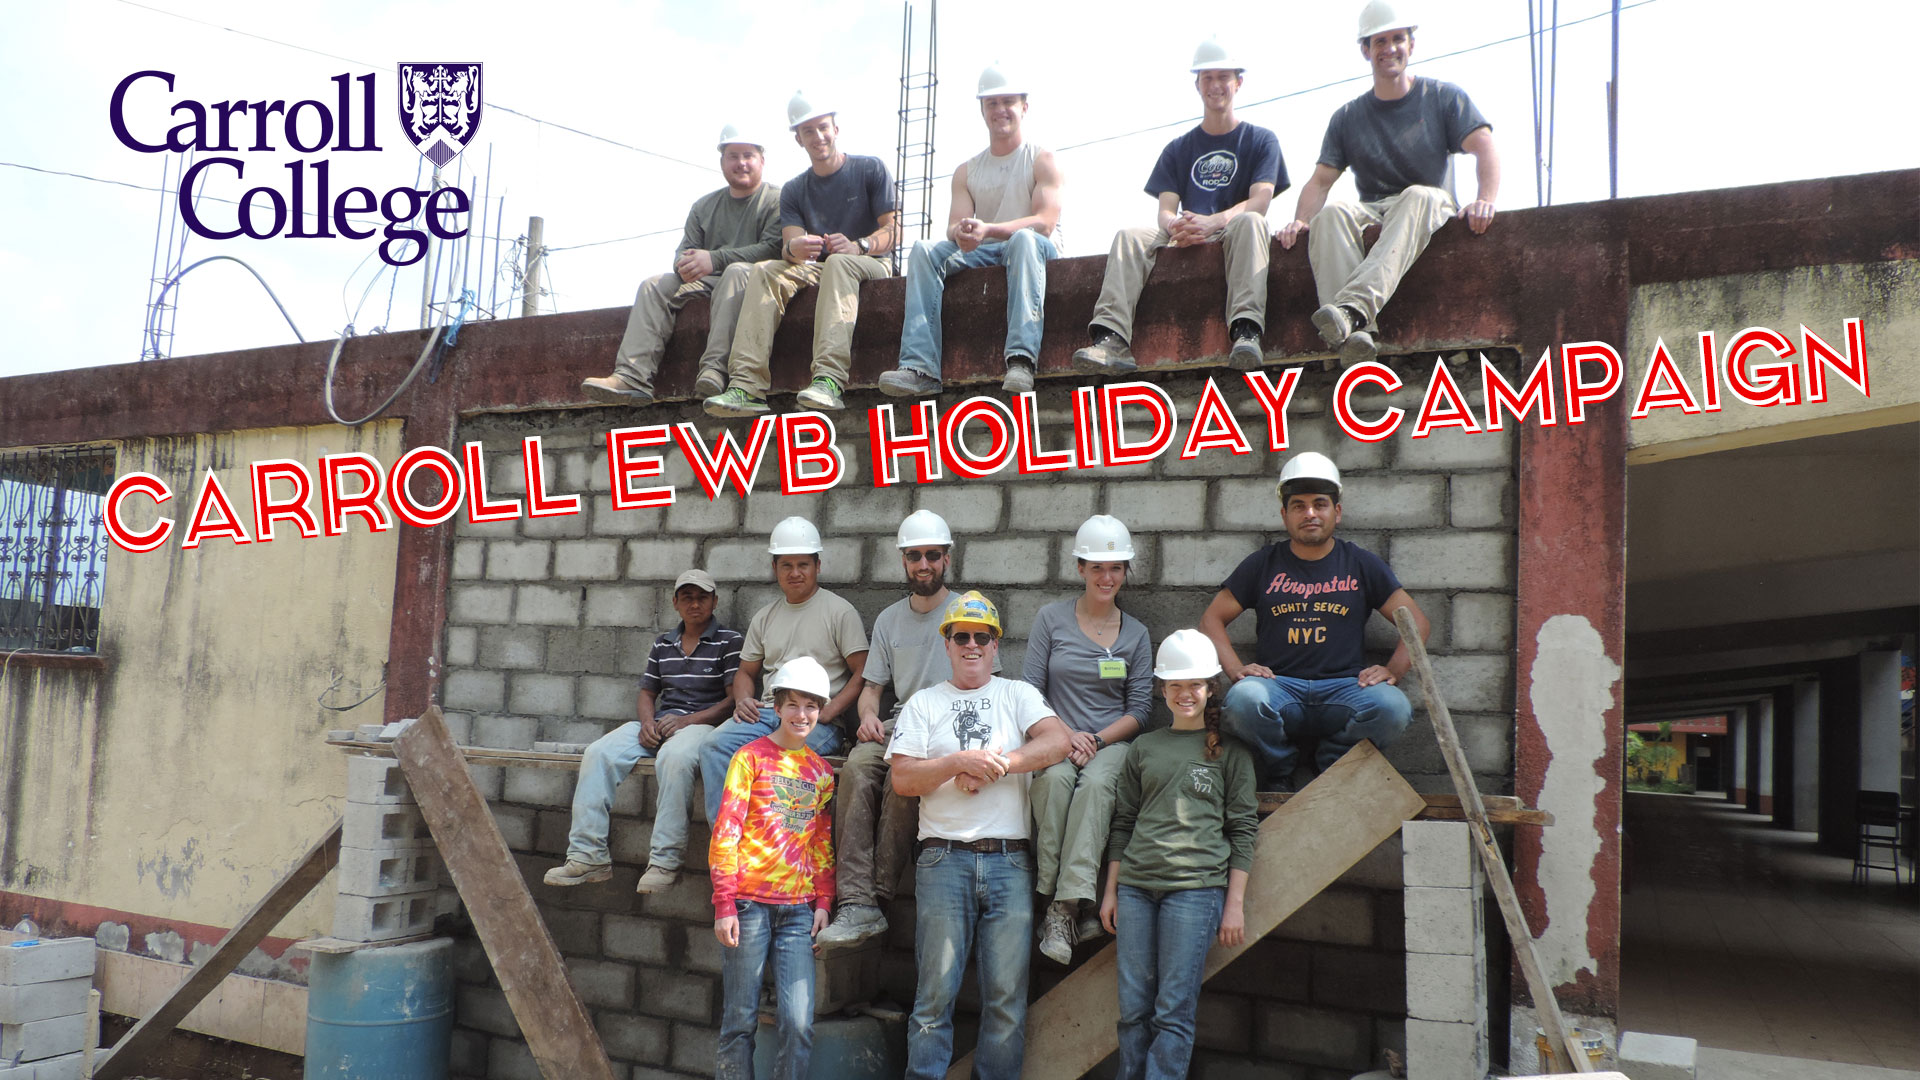 Graphic for Carroll EWB Holiday Campaign kick off